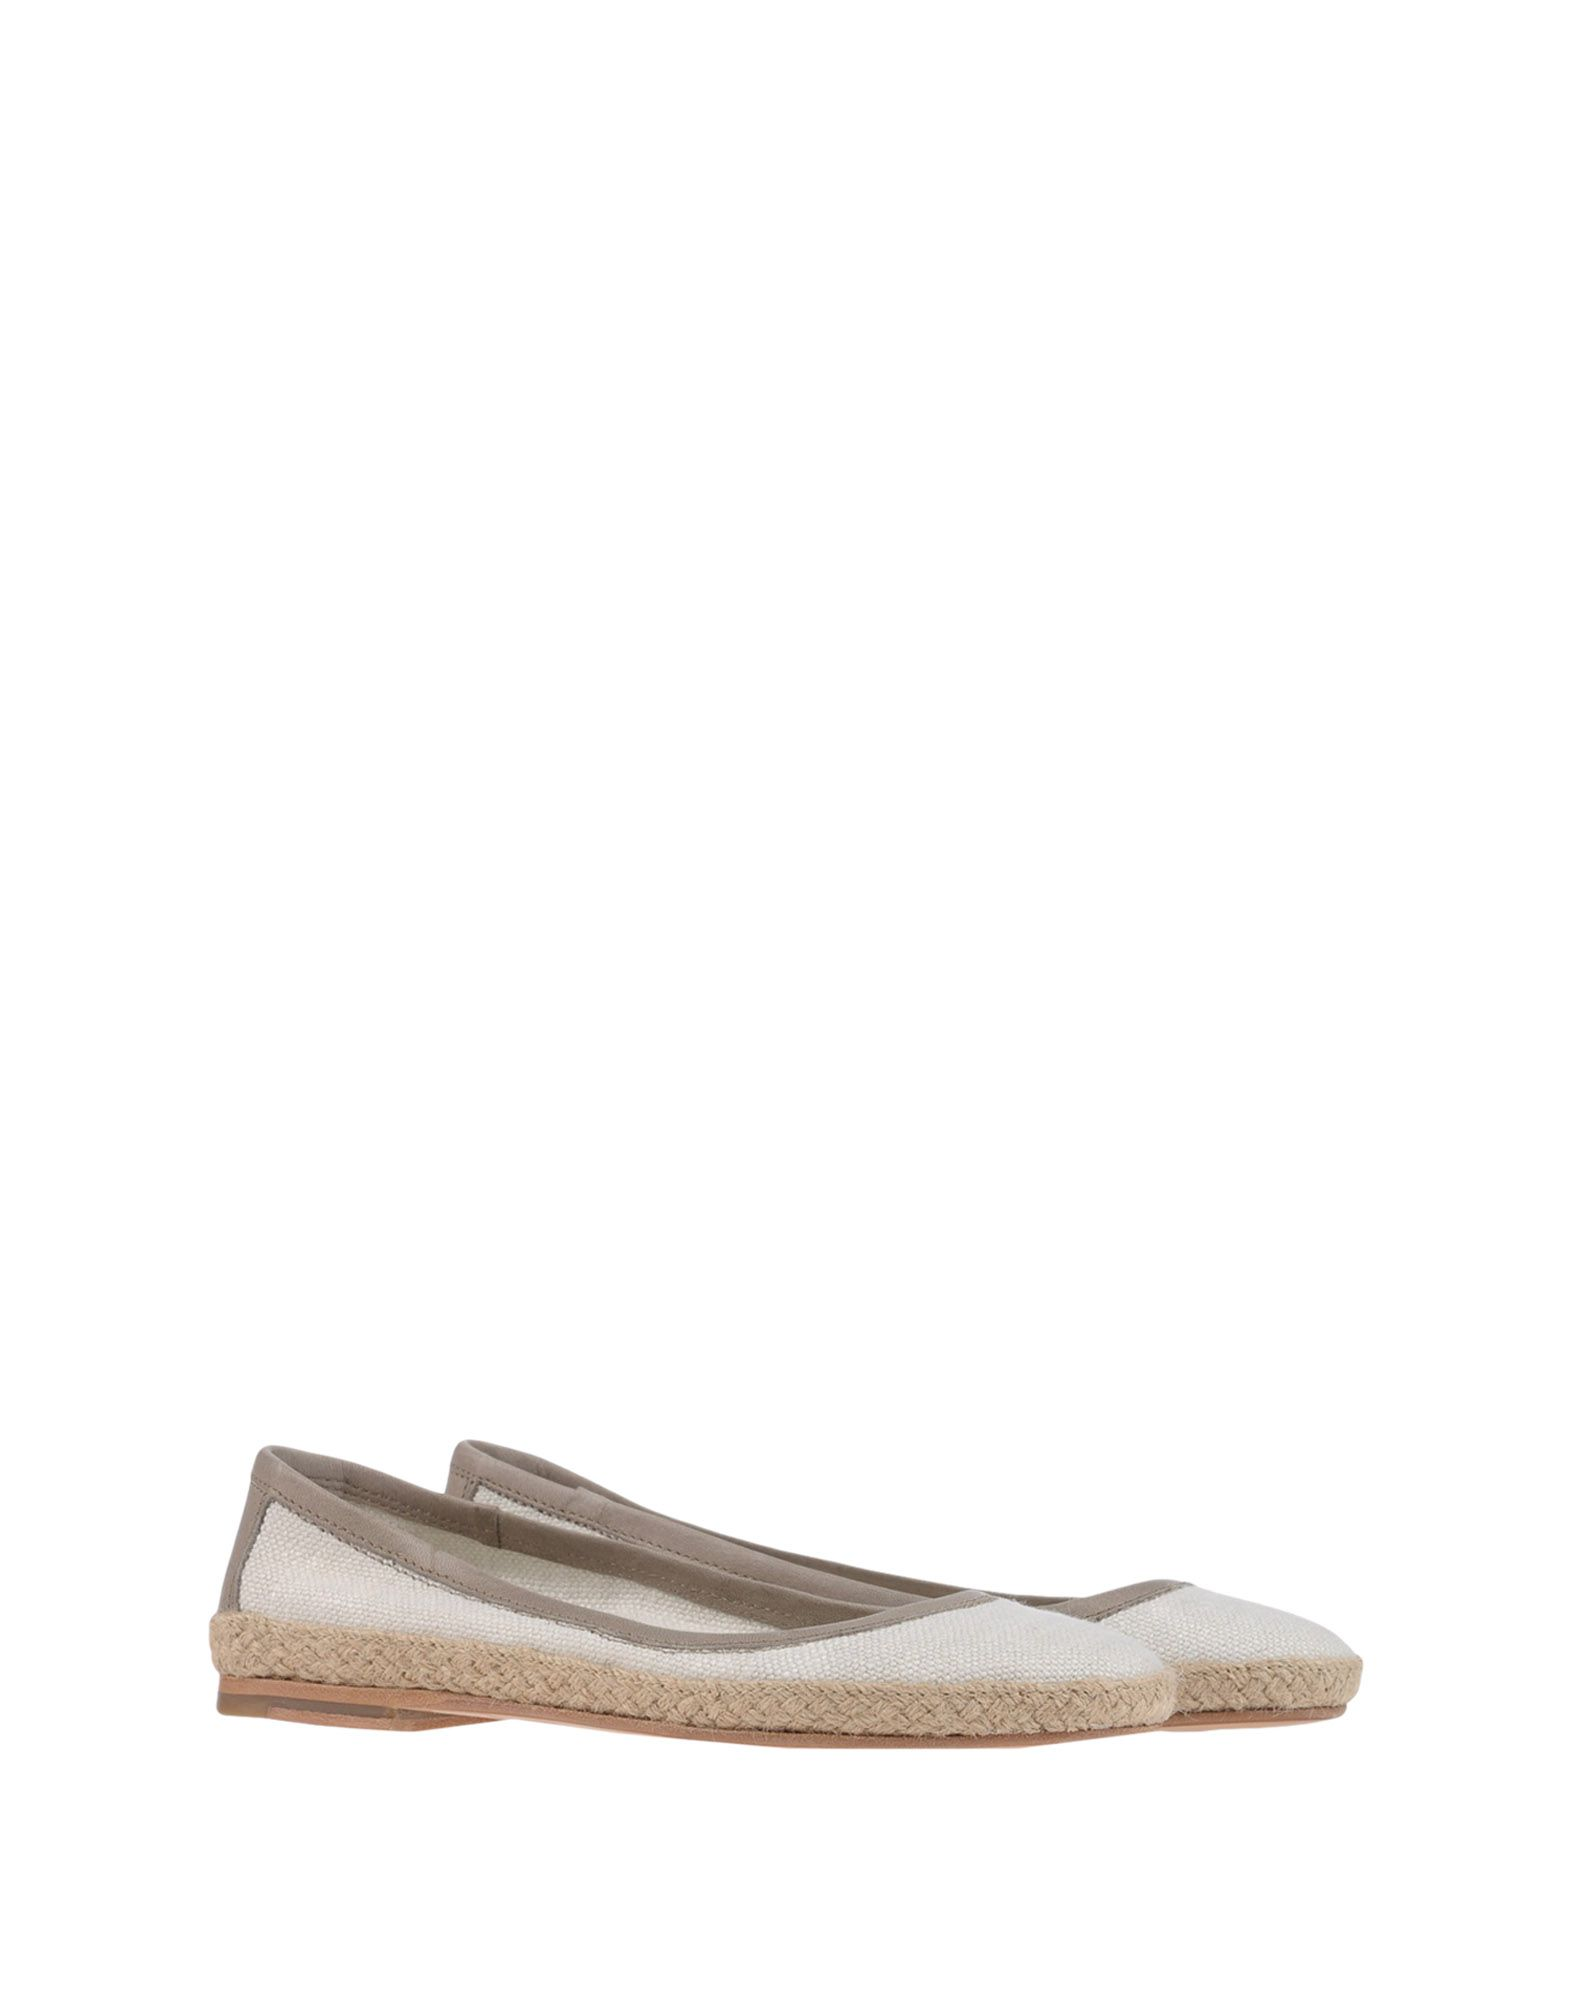 Espadrilles N.D.C. Made By Hand Femme - Espadrilles N.D.C. Made By Hand sur